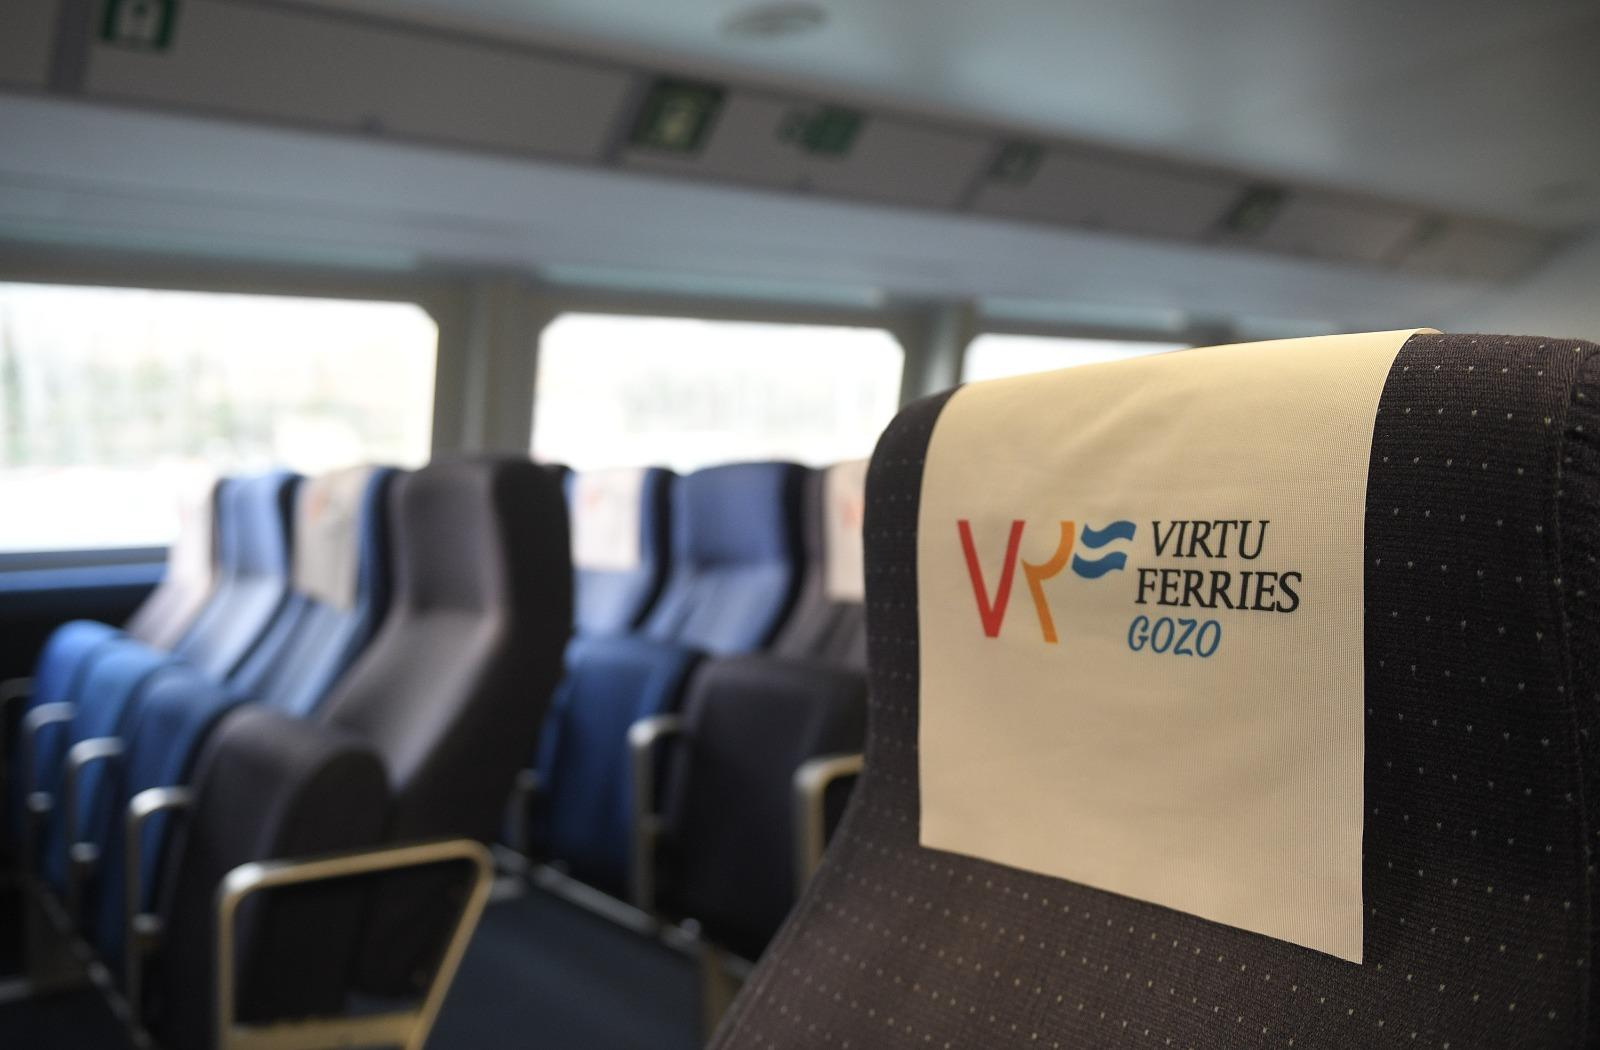 Whilst just as fast as it's competitor, the Virtu Ferries facilities are older, and the trip slightly bumpier Photo: Matthew Mirabelli